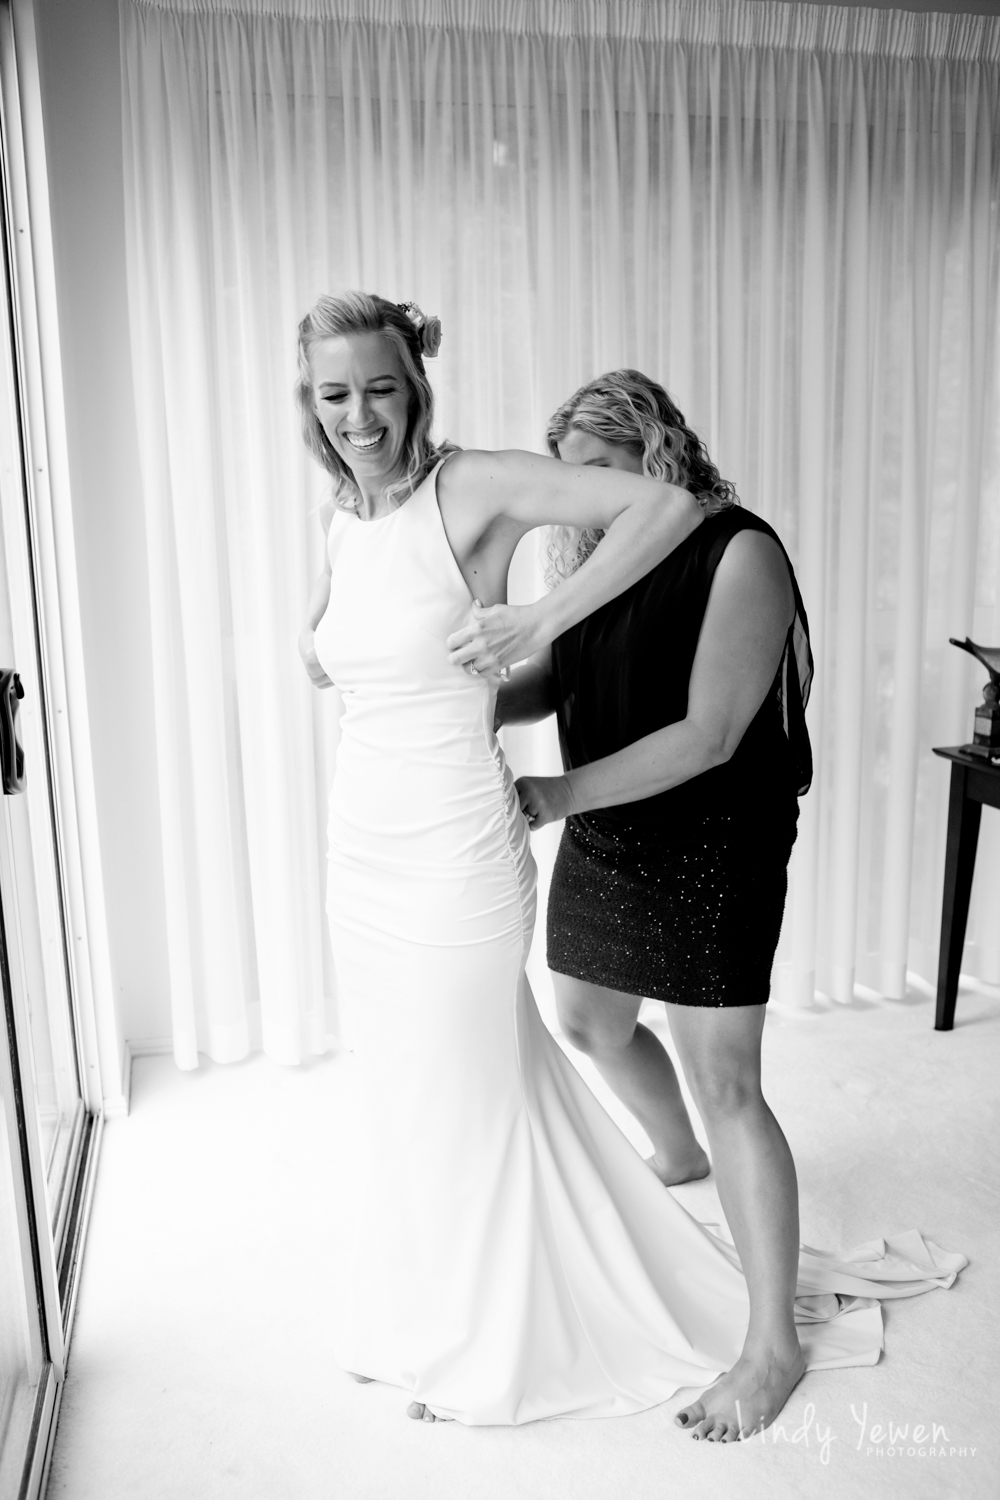 noosa-wedding-photographers-Emmy-Nathan 52 copy.jpg